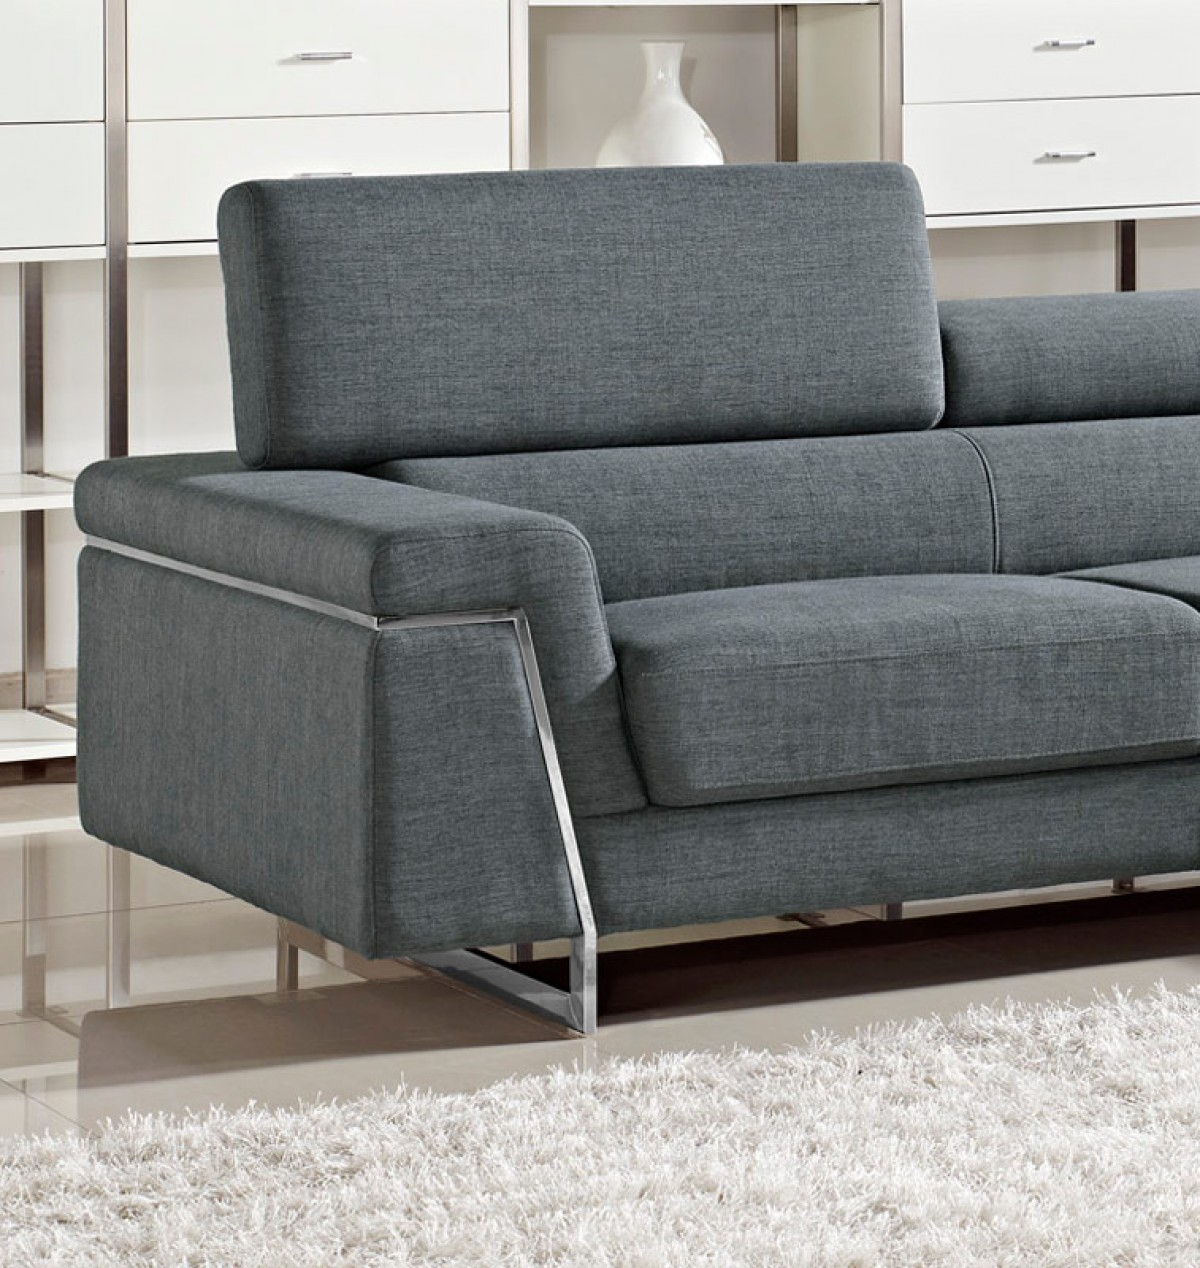 Fabric For Furniture: Modern Fabric Sectional Sofa Set